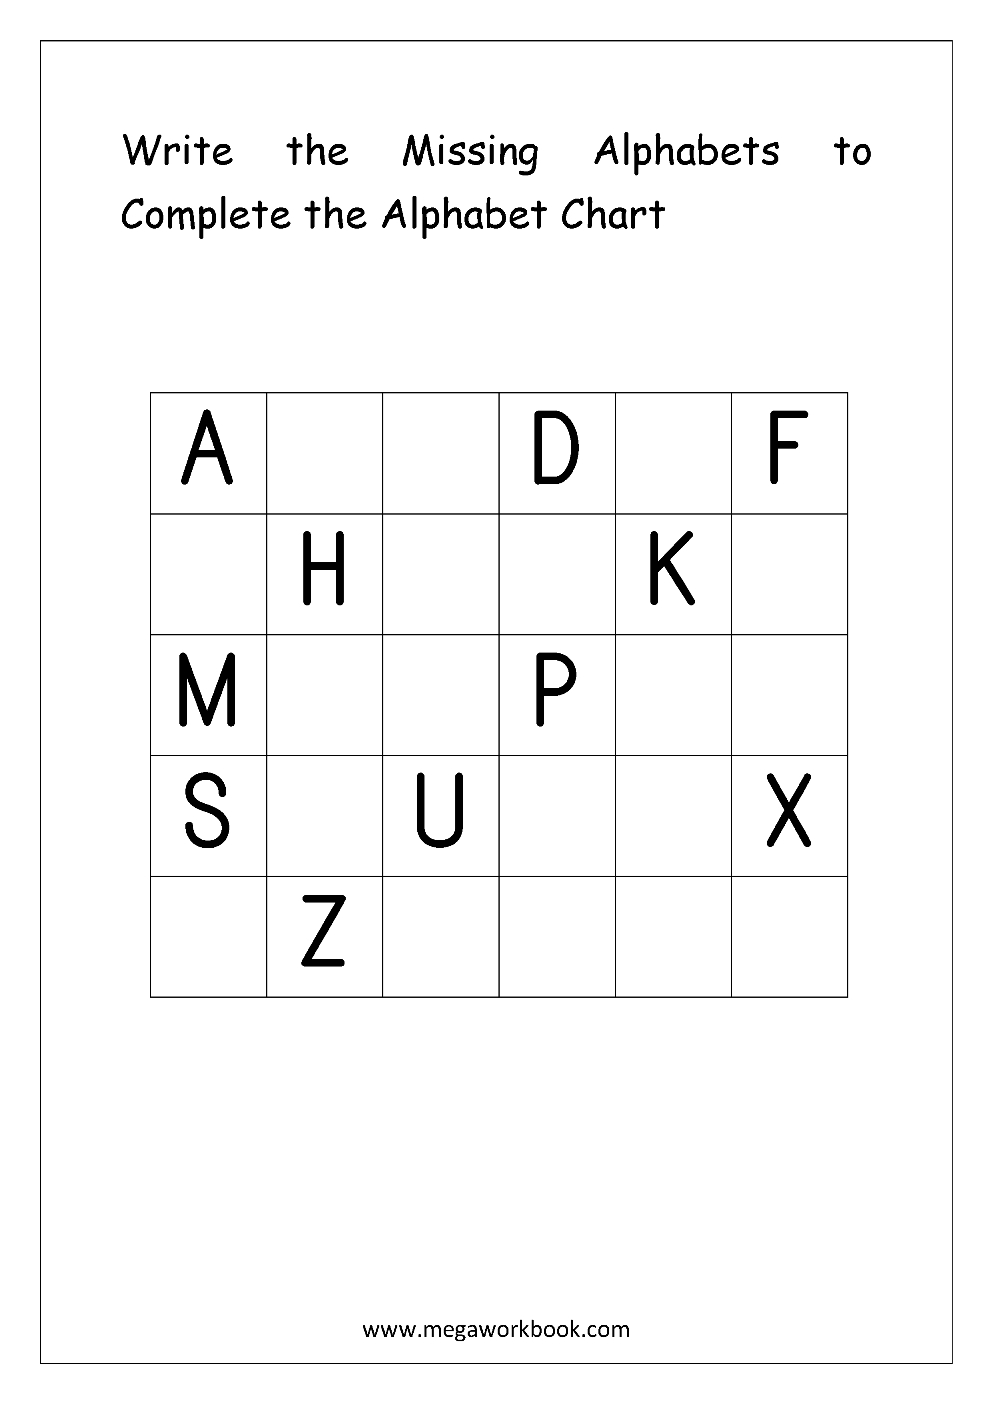 Free English Worksheets - Alphabetical Sequence for Alphabet Worksheets English